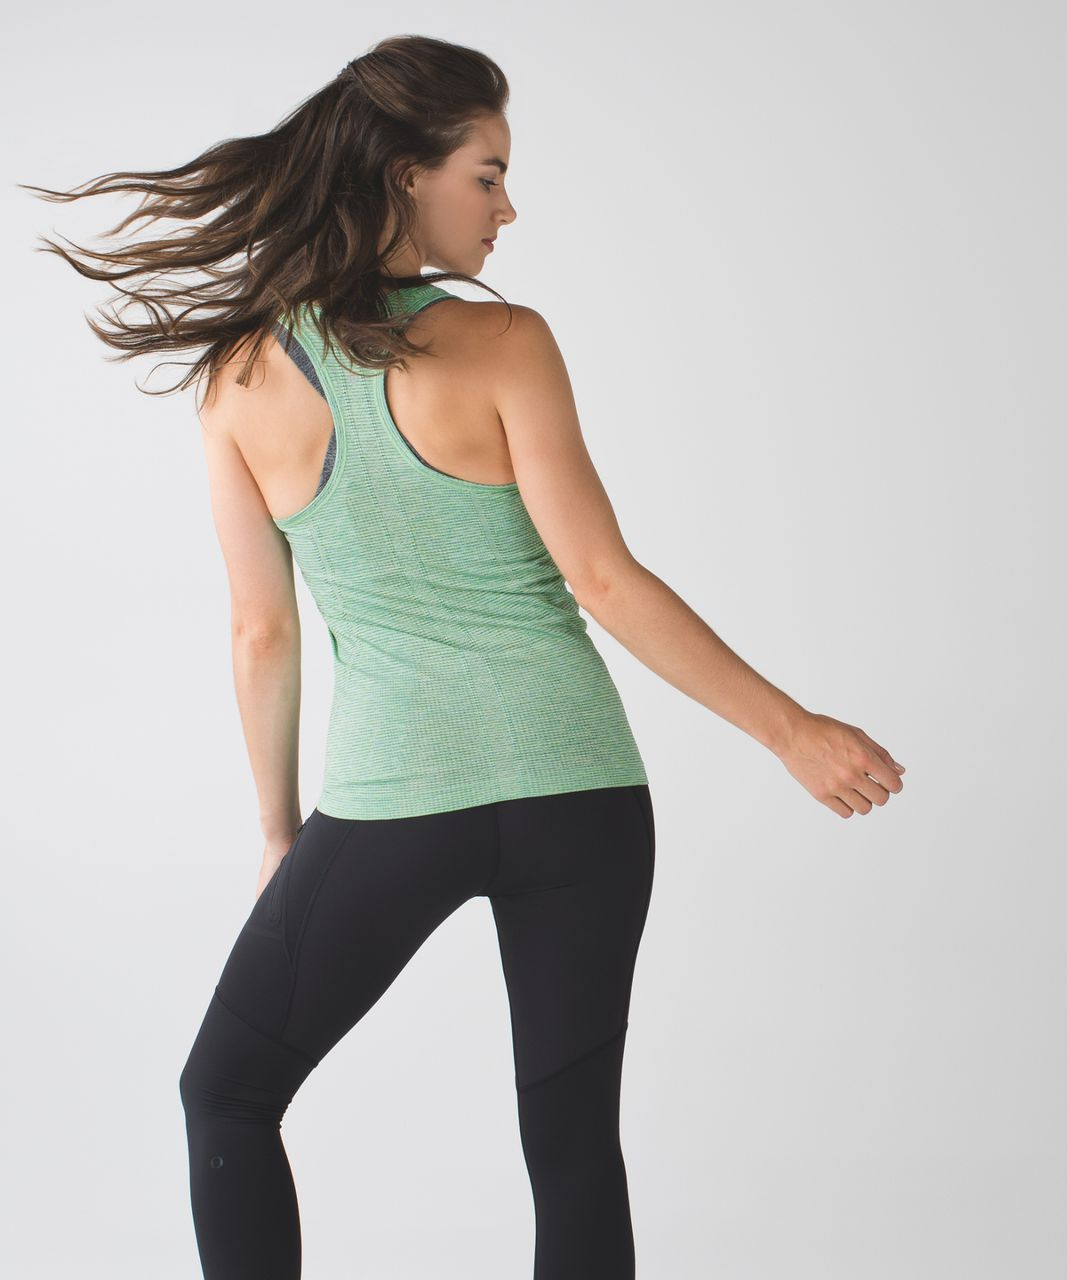 Lululemon Swiftly Tech Racerback - Pistachio / Black